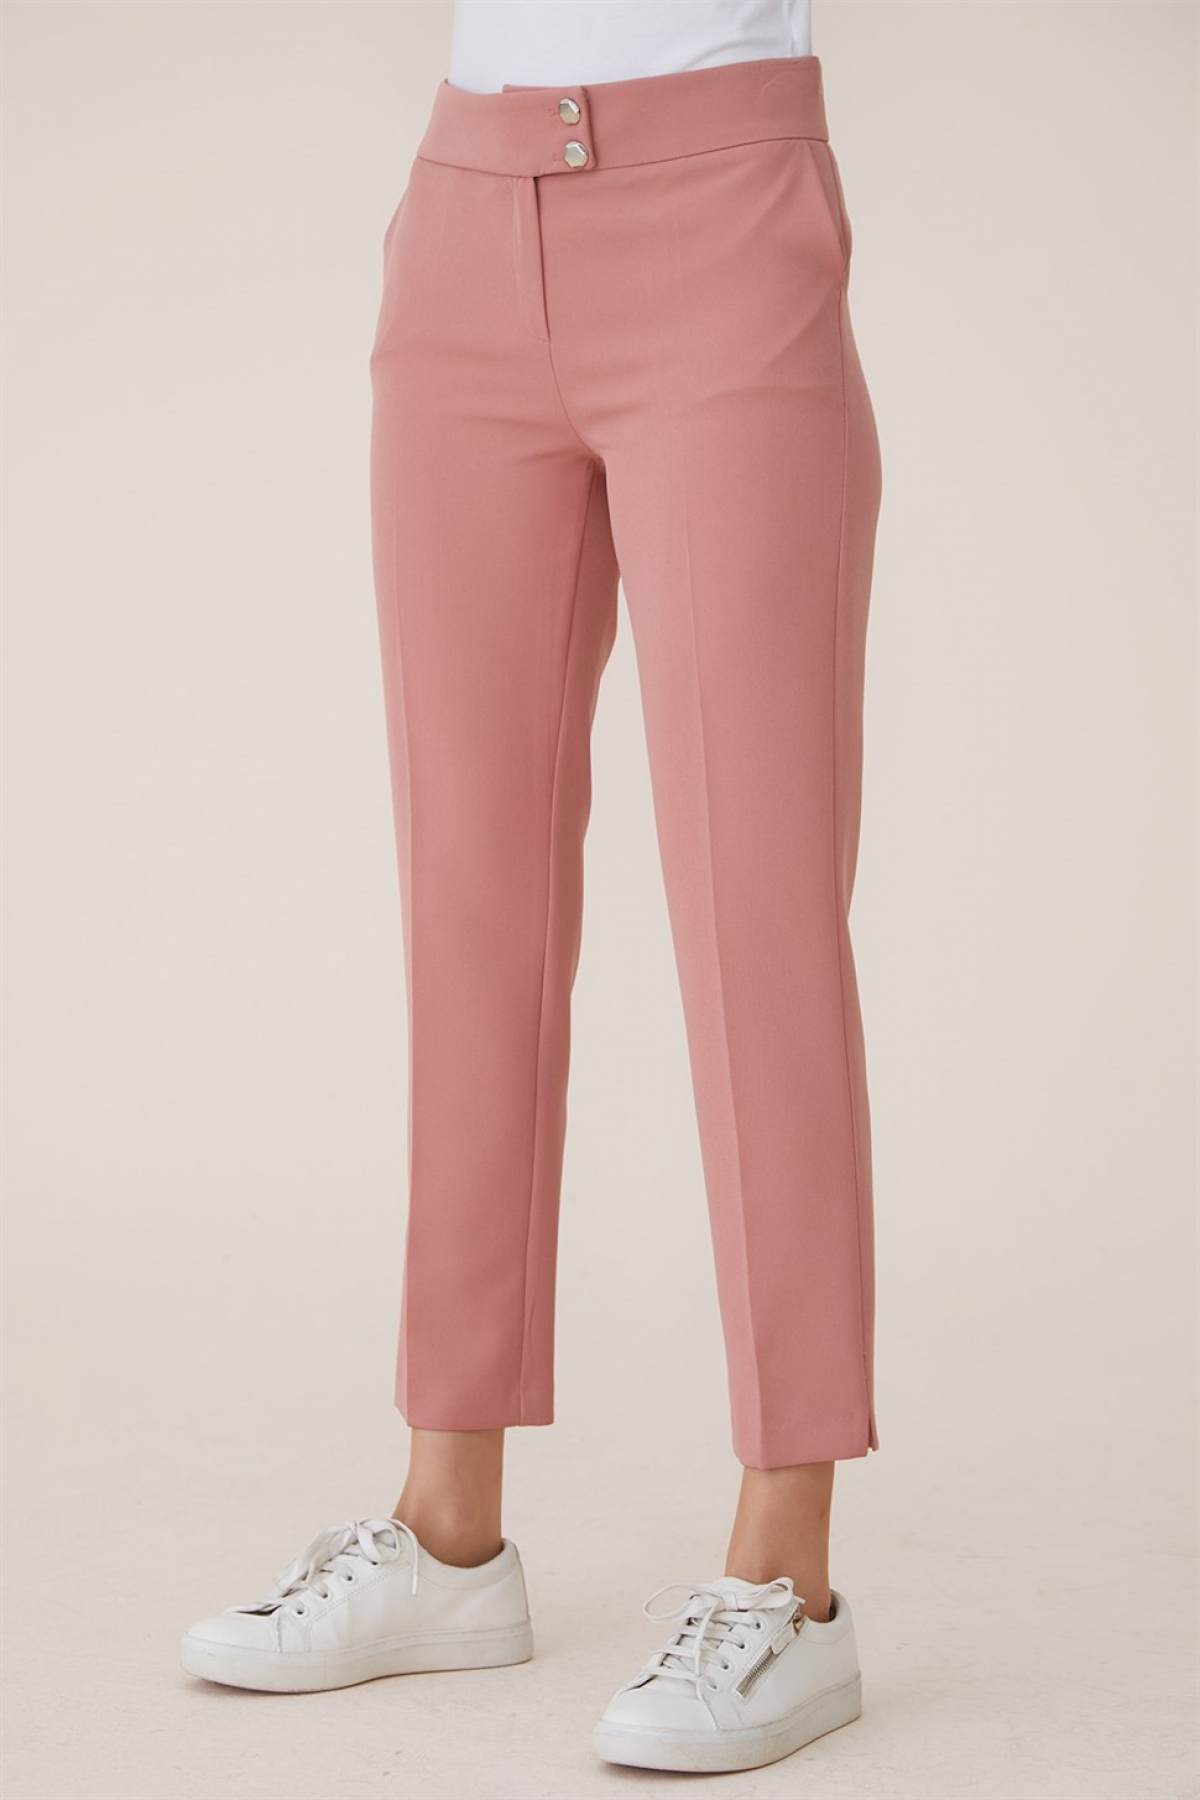 Armine Ankle Length Women's Pants 9Y3020 Pink